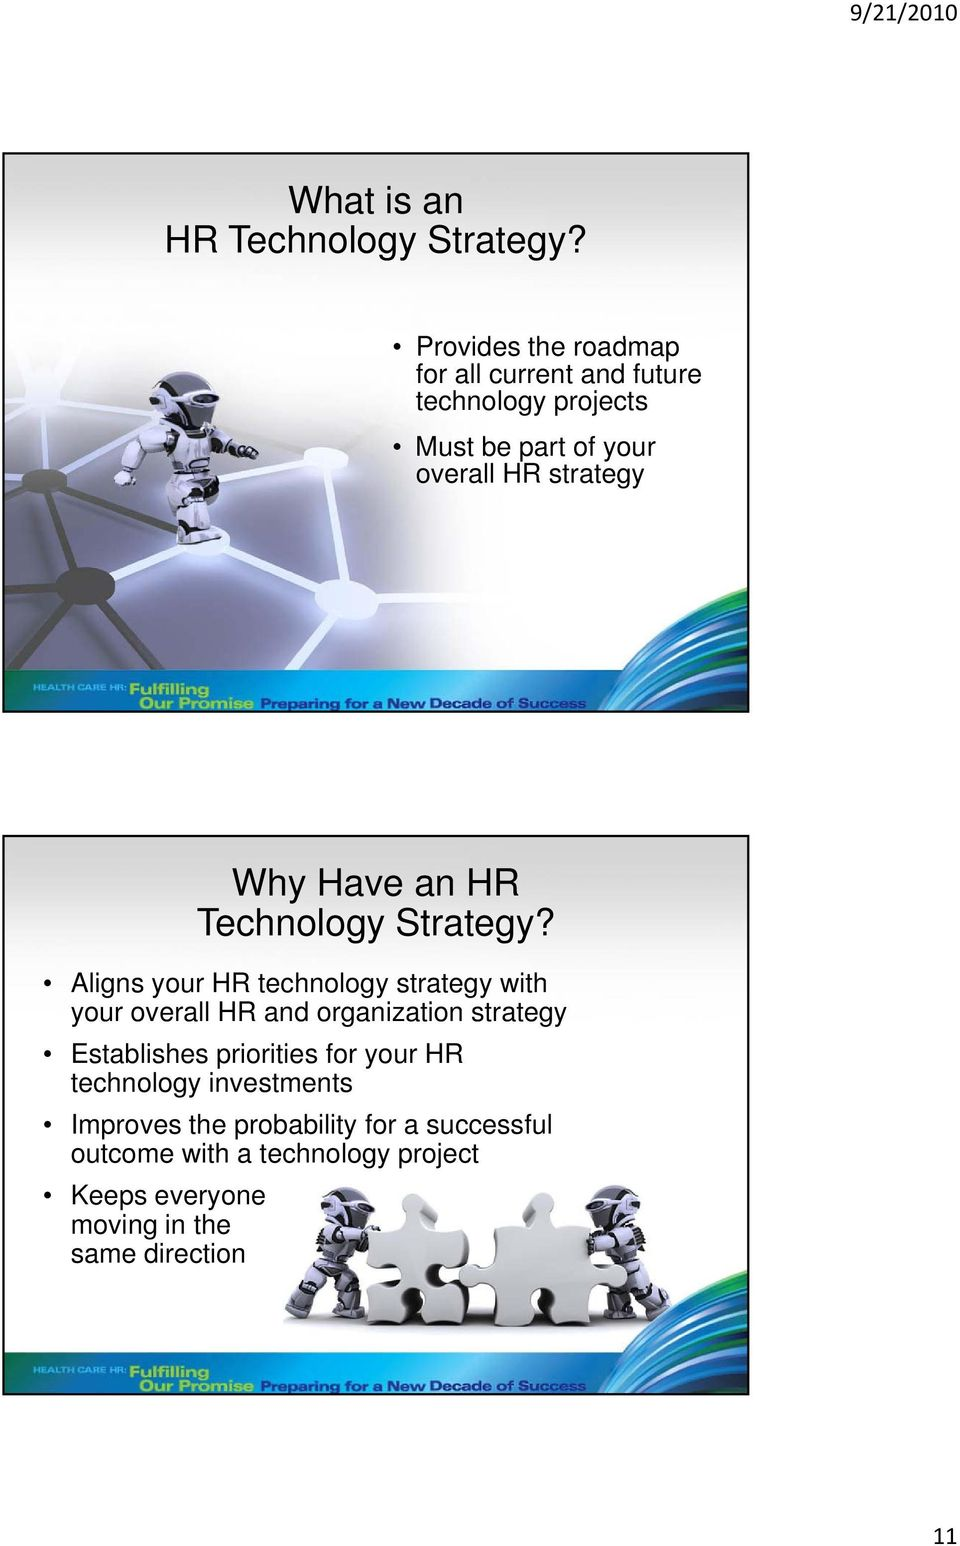 Why Have an HR Technology Strategy?